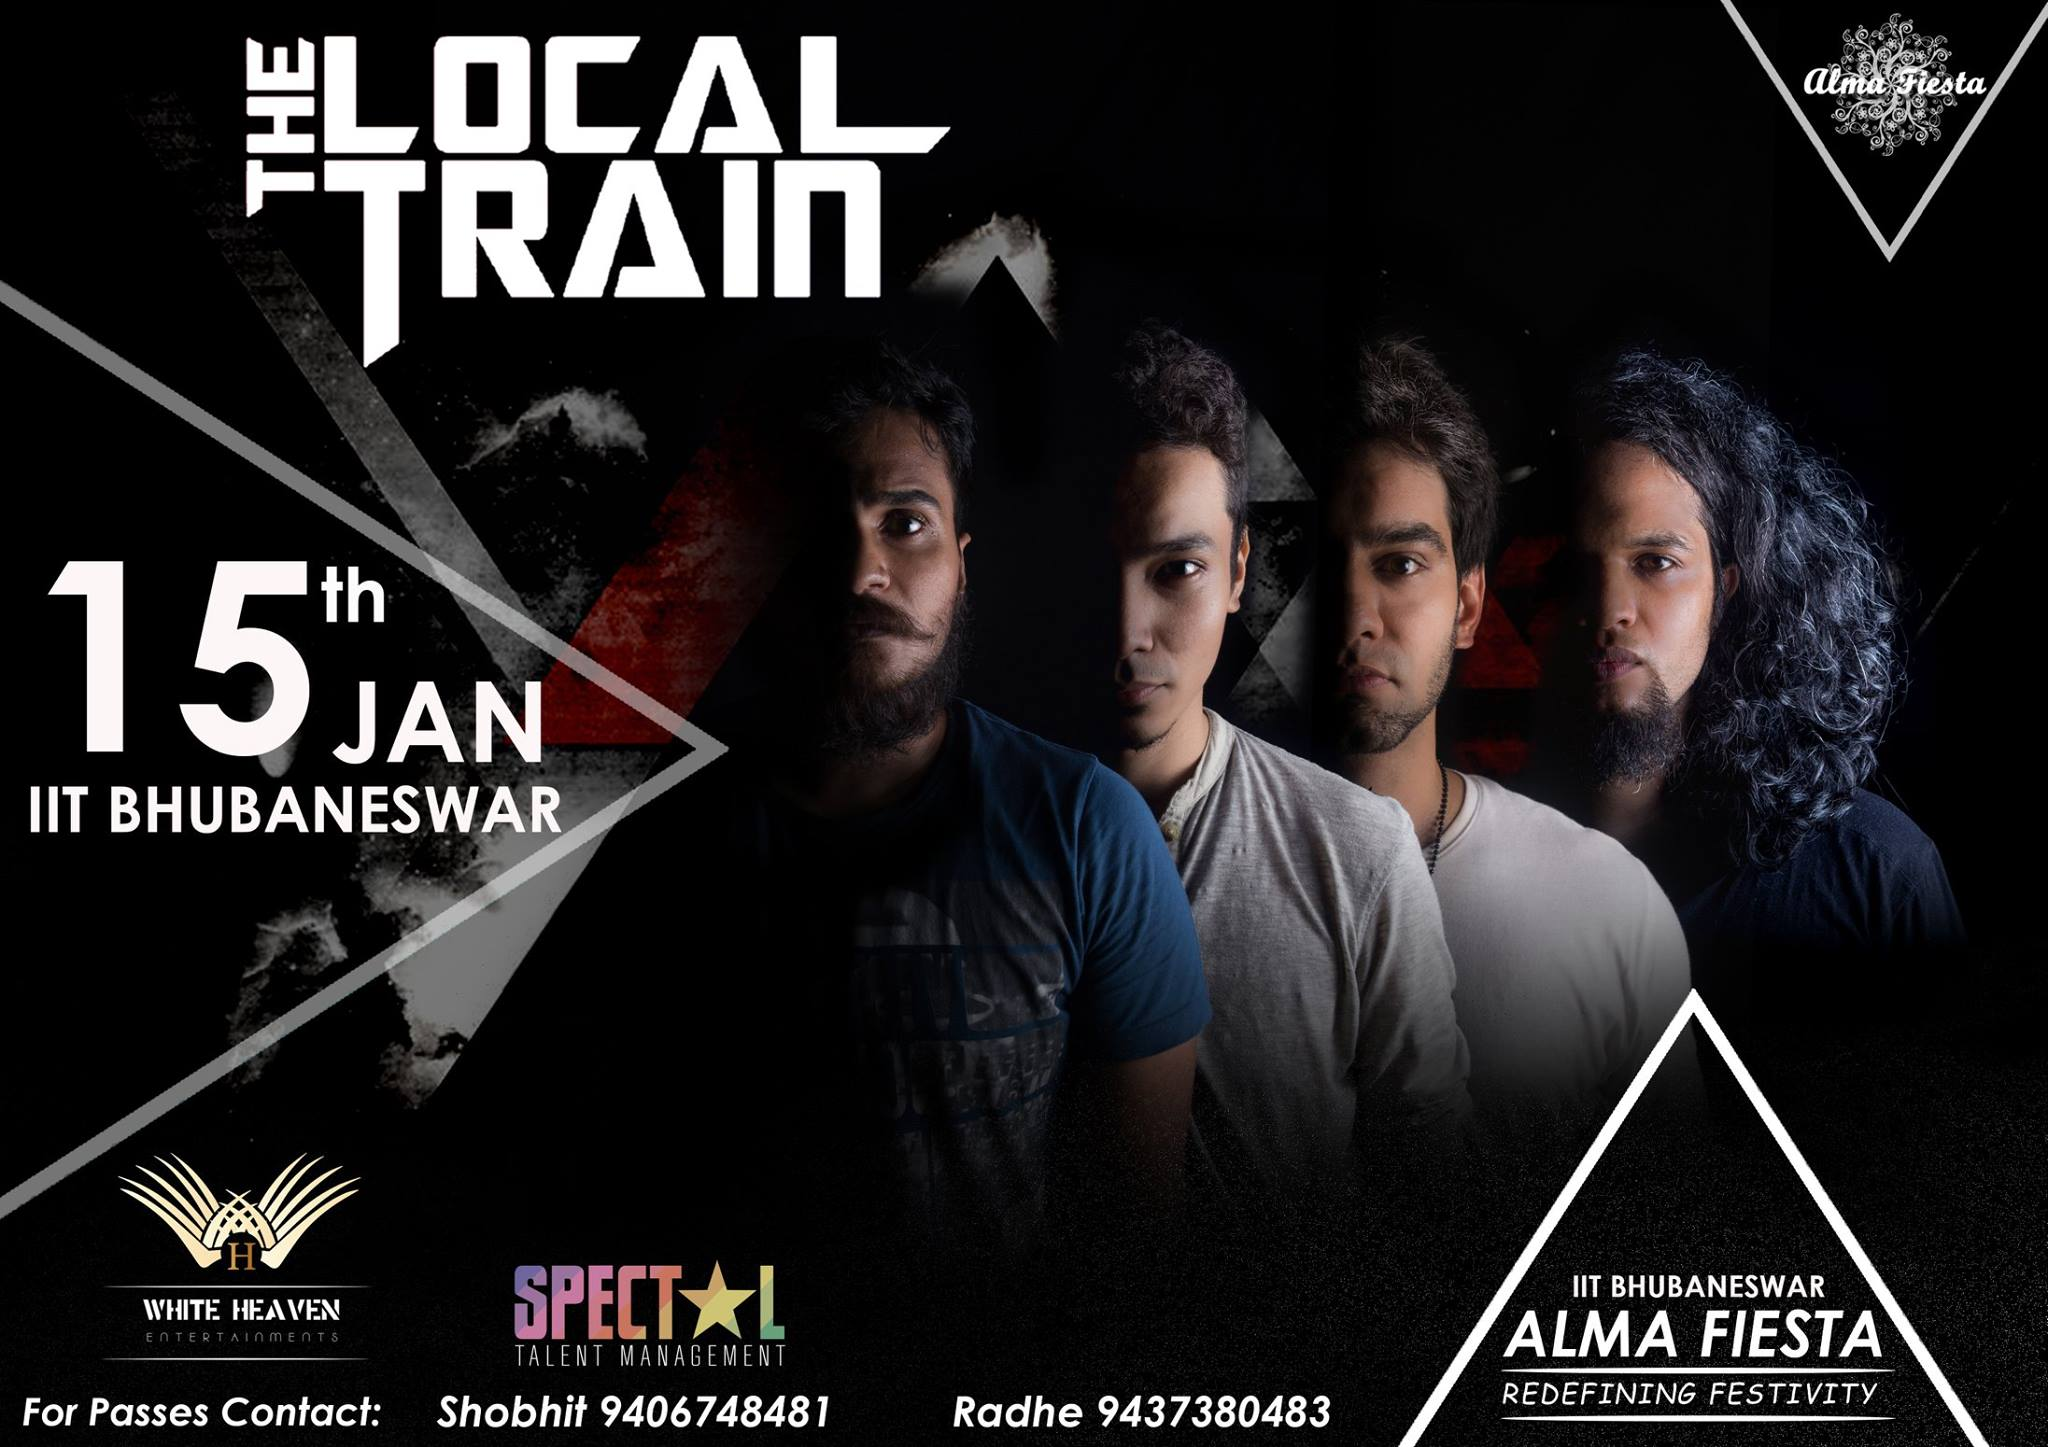 Local Train band IIT bhubaneswar buzz